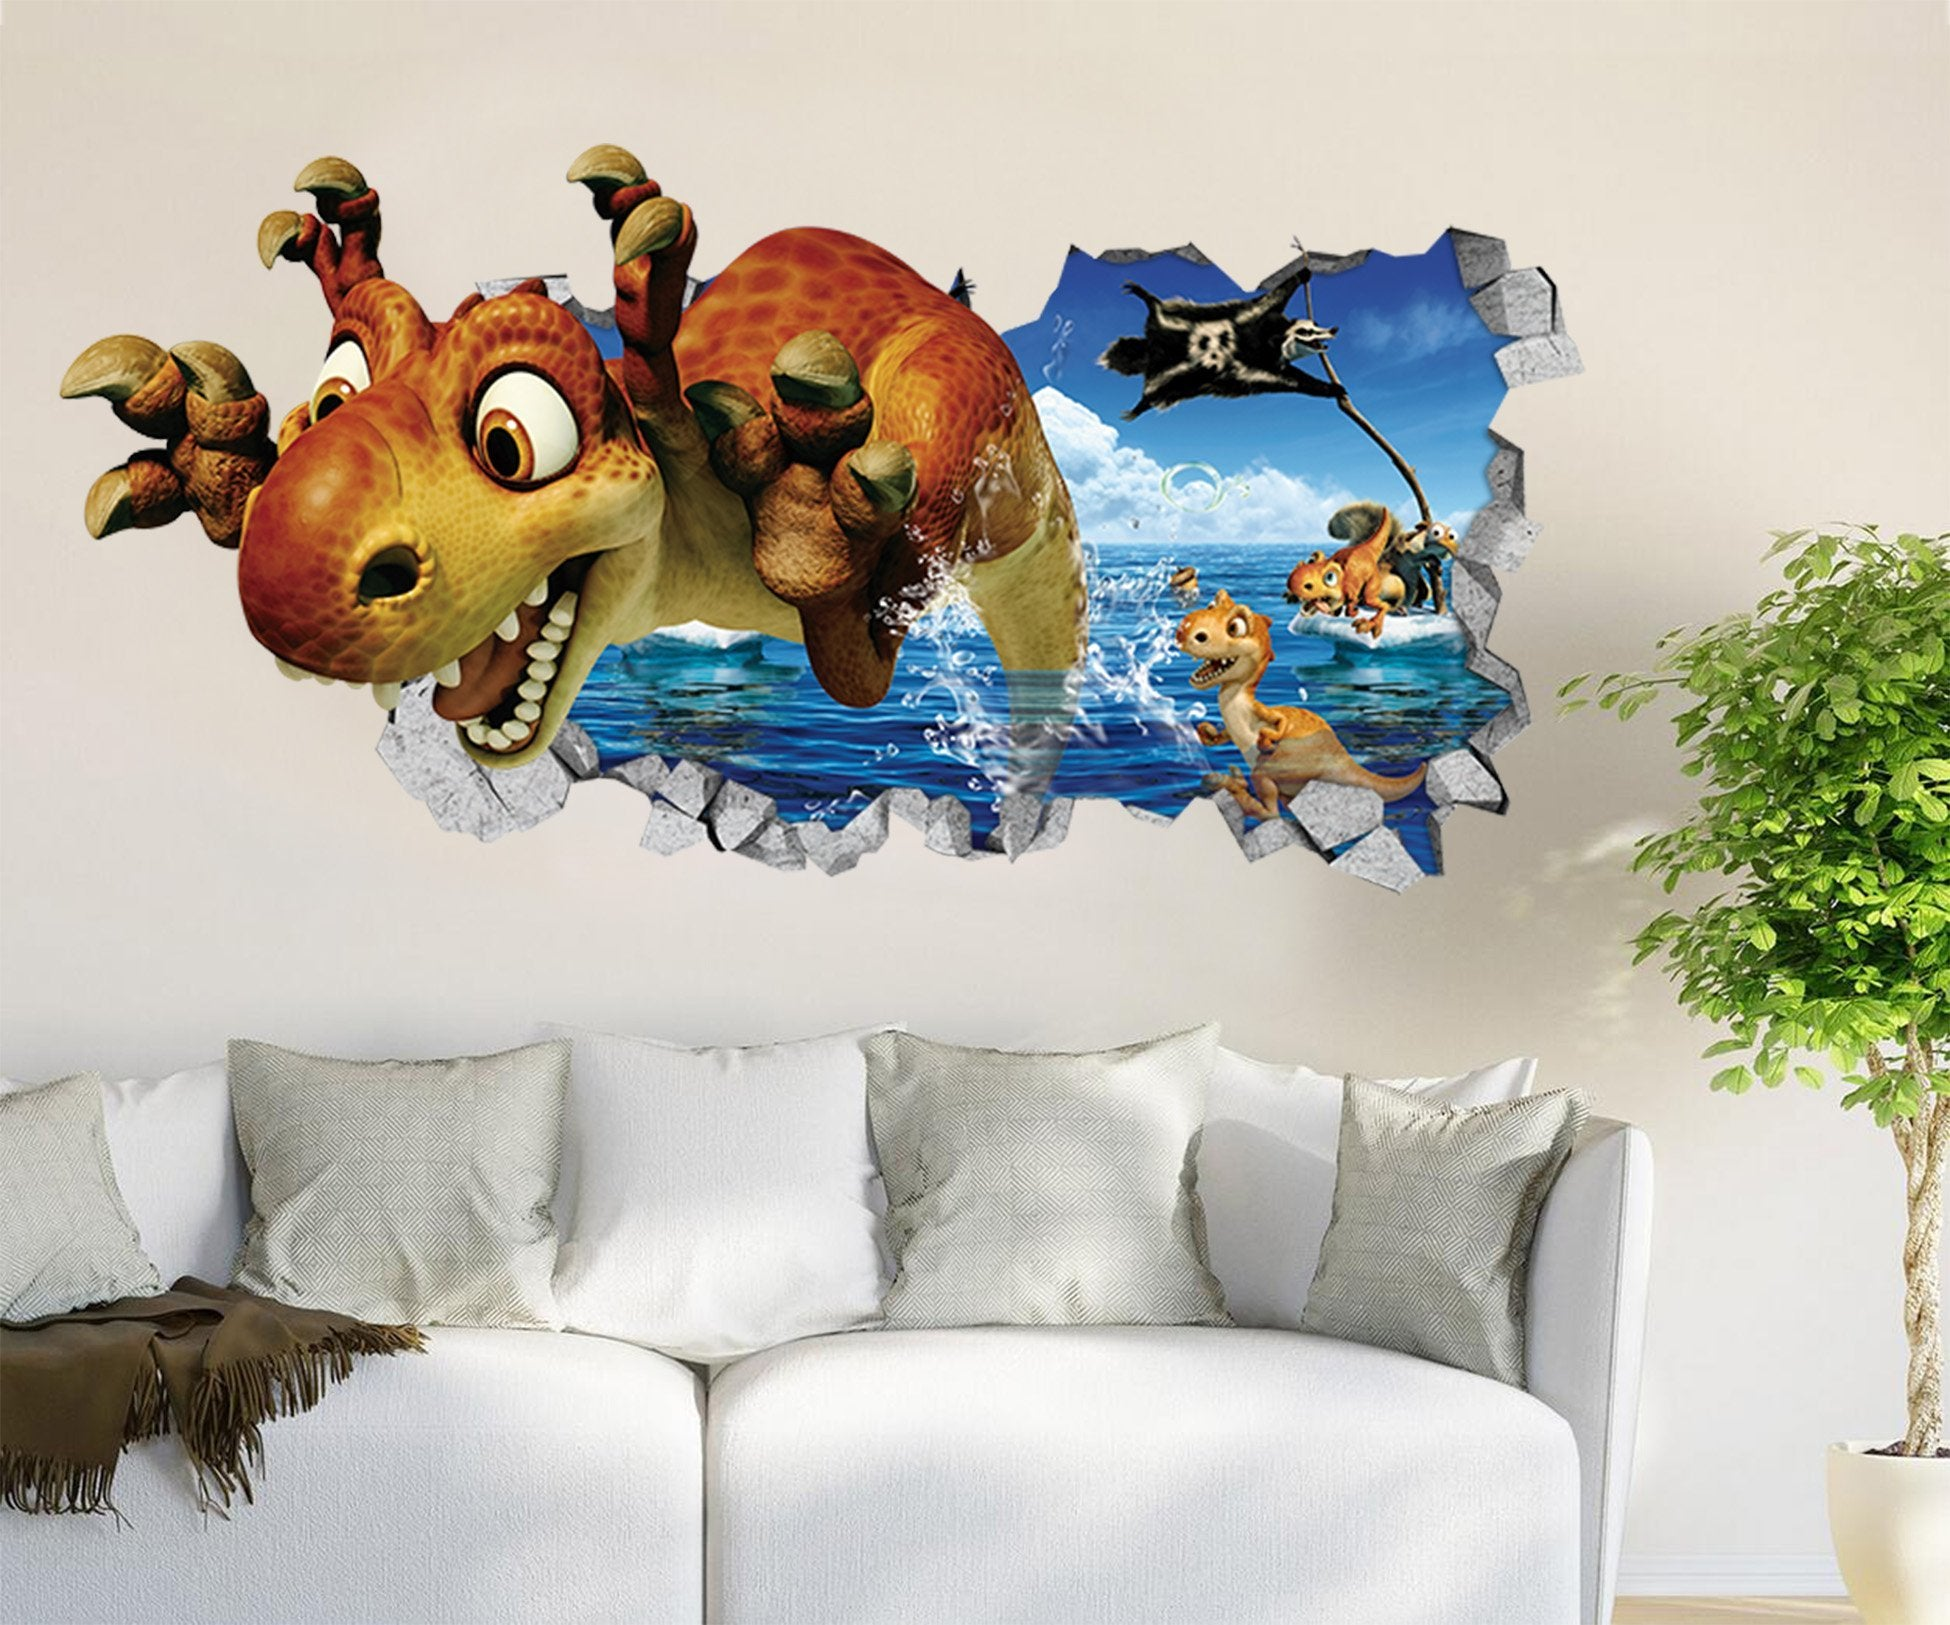 3d Sea Lovely Dinosaurs 44 Broken Wall Murals Aj Wallpaper